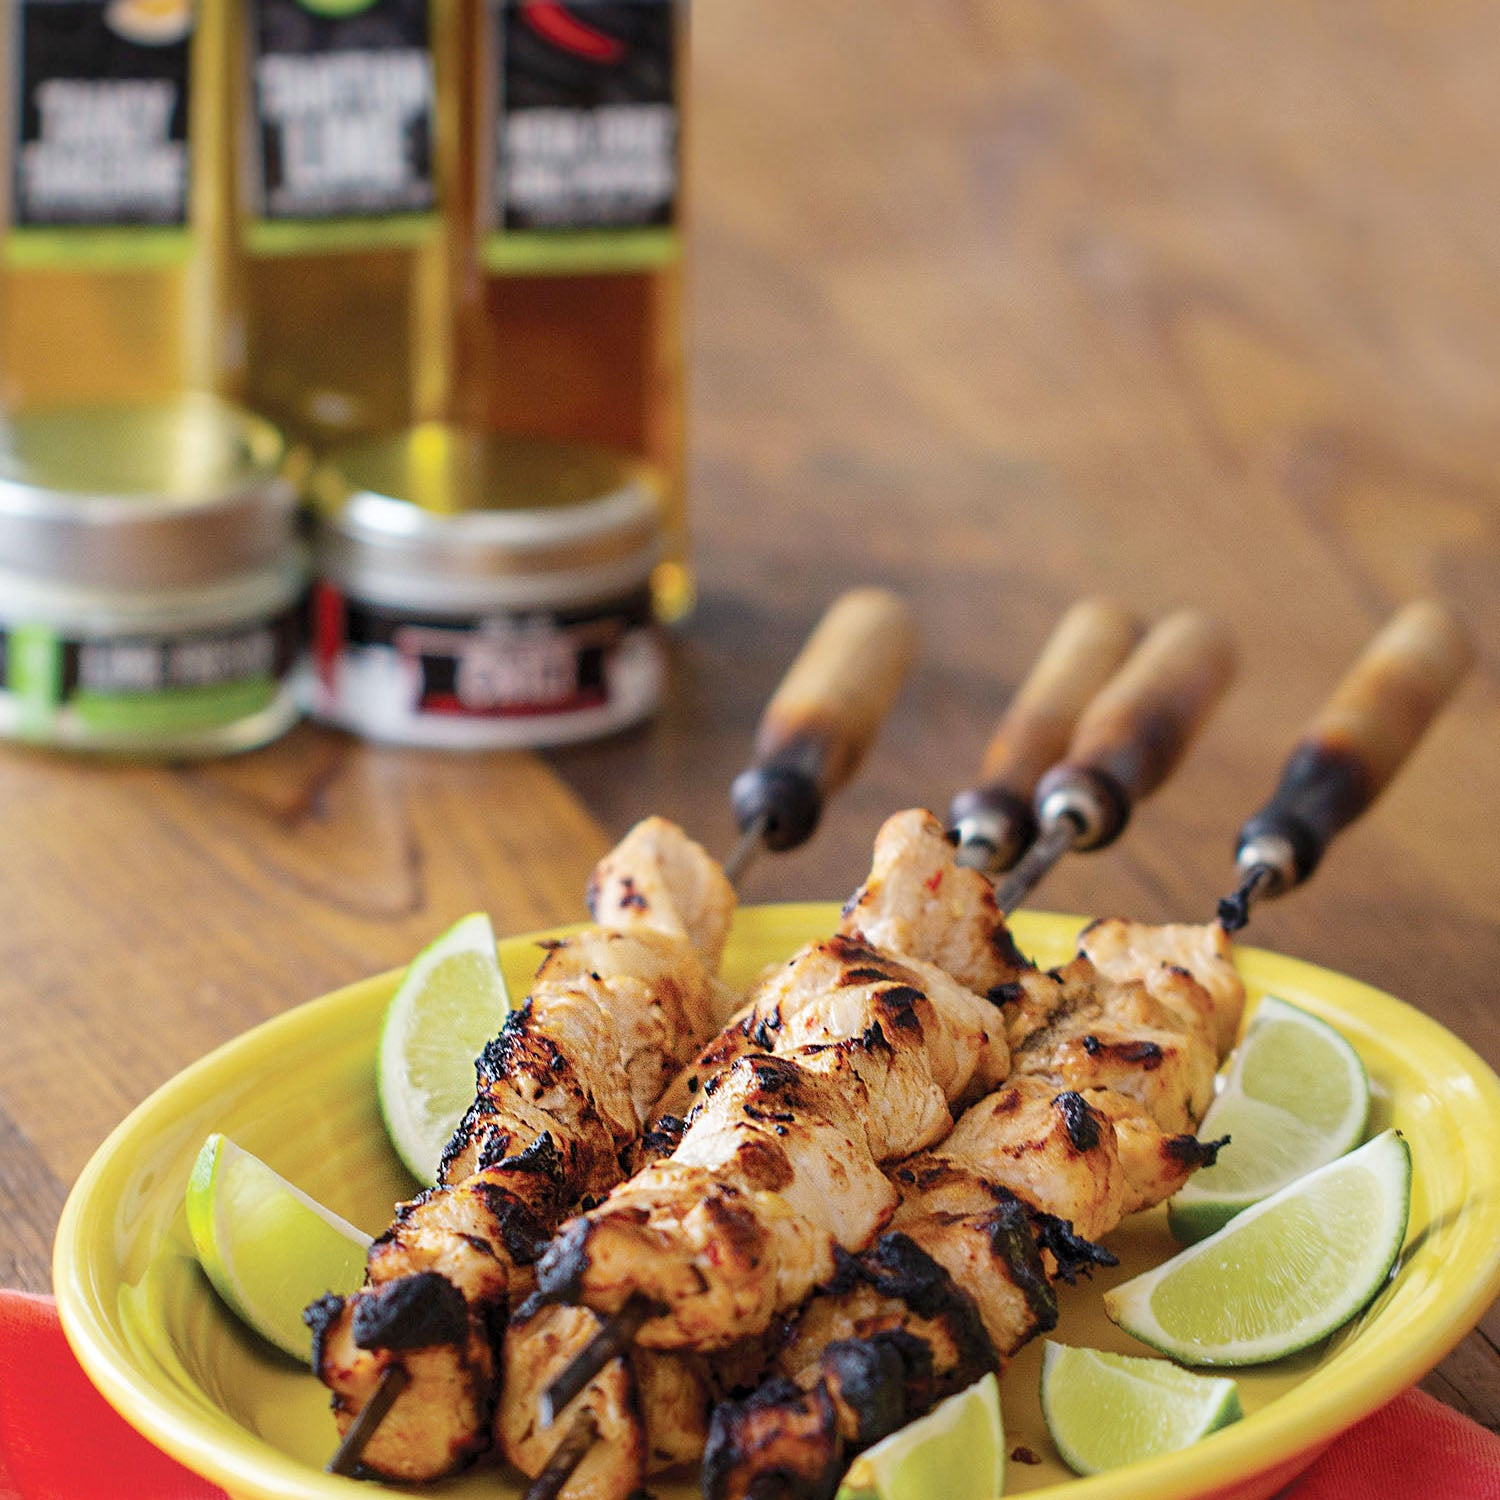 Tangerine Chili Chicken Skewers